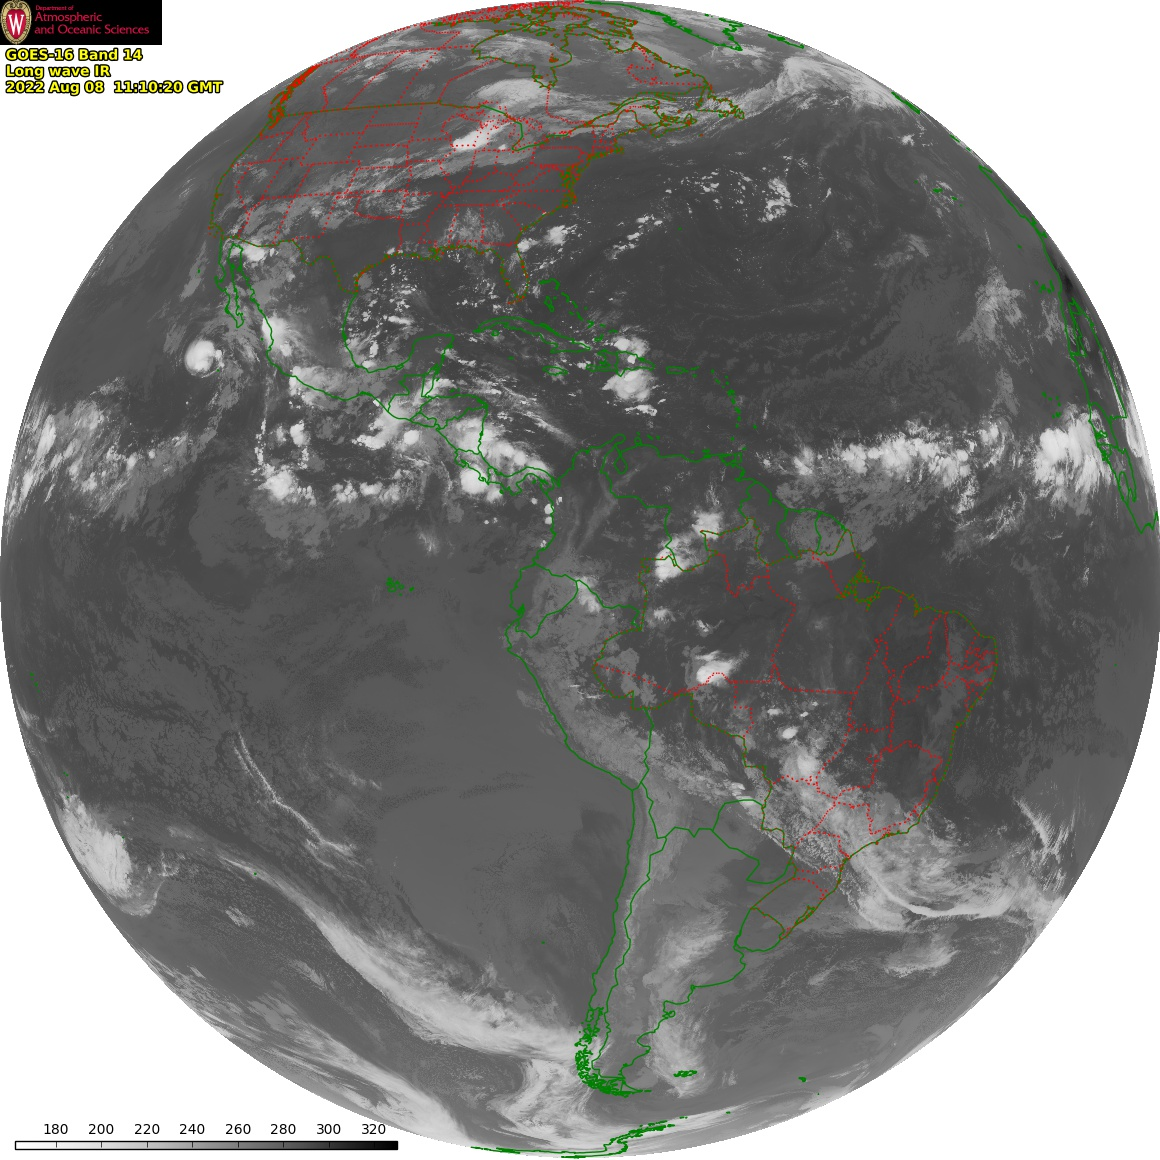 Most recent Geostationary Operational Environmental Satellite (GOES) image of the Eastern United States